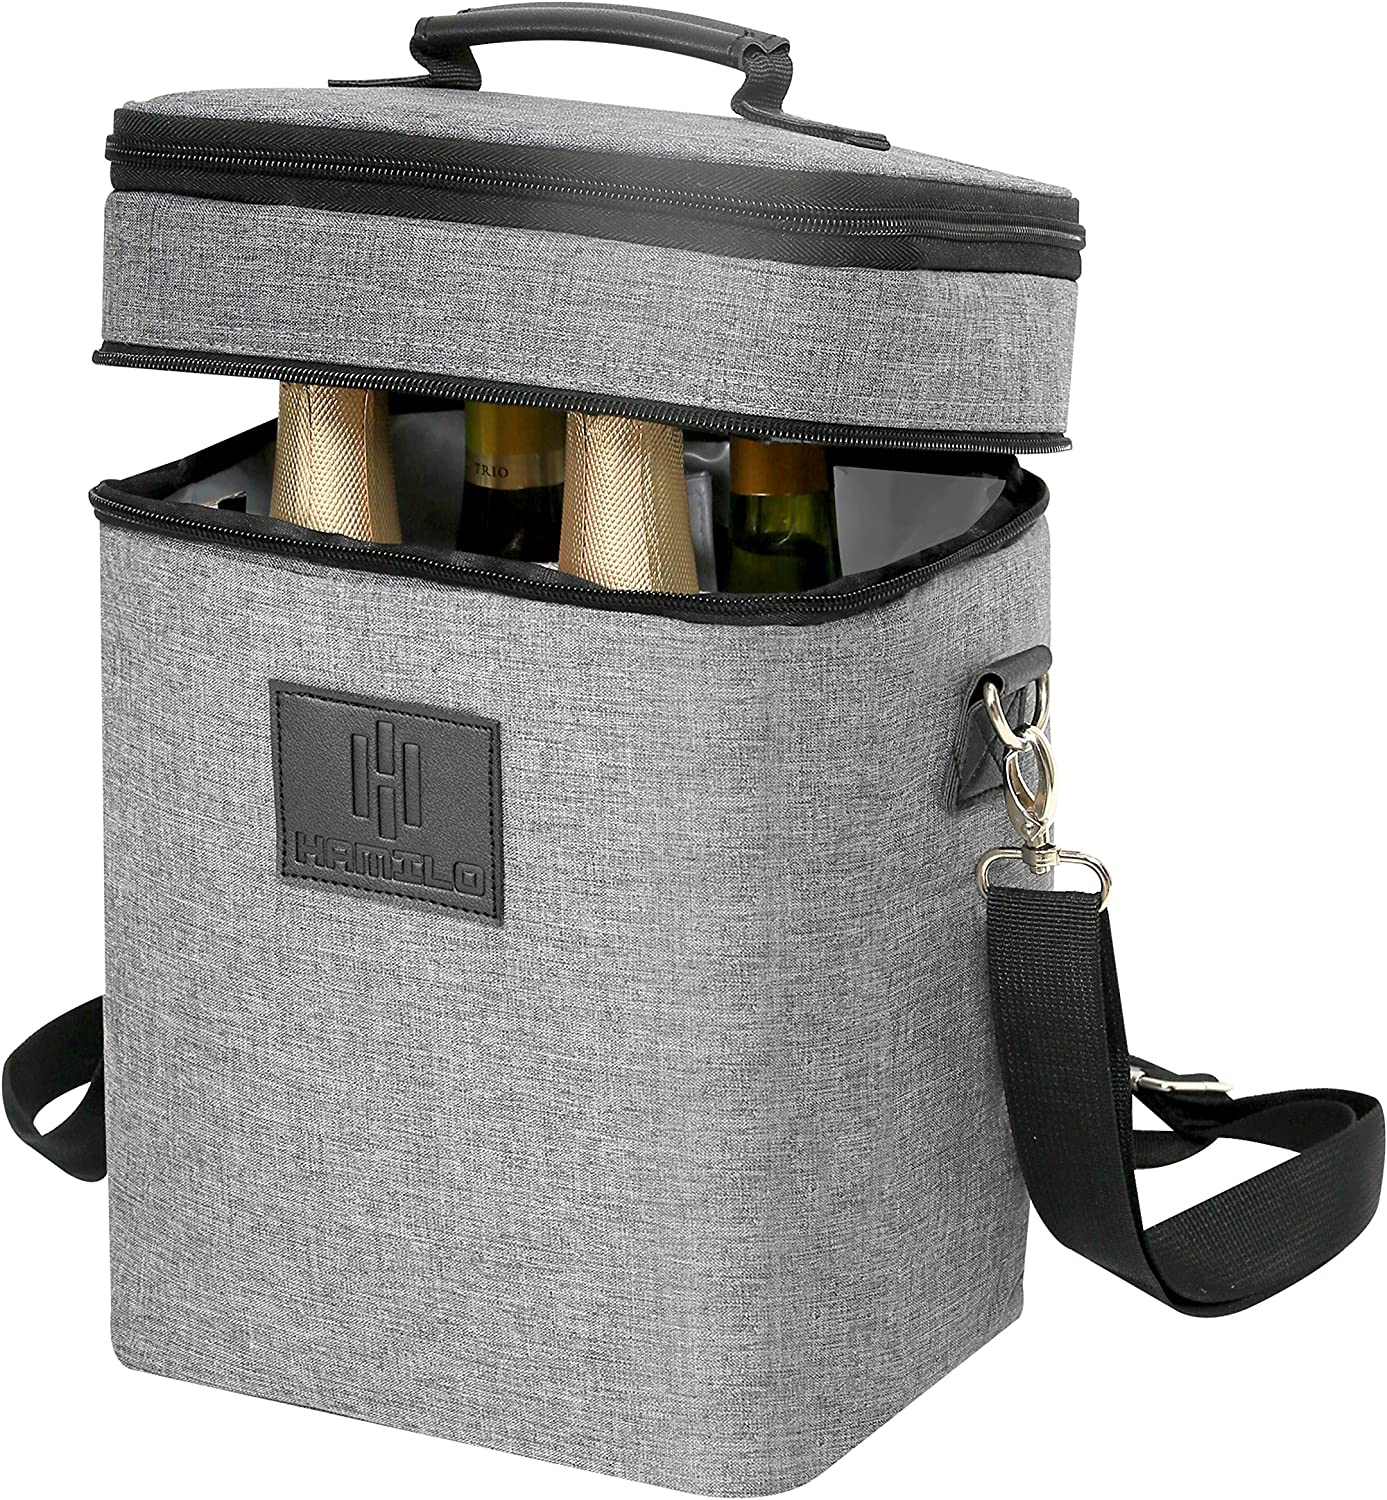 HAMILO 4 Bottle Wine Carrier, Waterproof and Leakproof Wine Tote Bag with Expandable Zipper and Padded Shoulder, Insulated Travel Champagne Cooler Purse with Shoulder Strap and Corkscrew Opener Holder